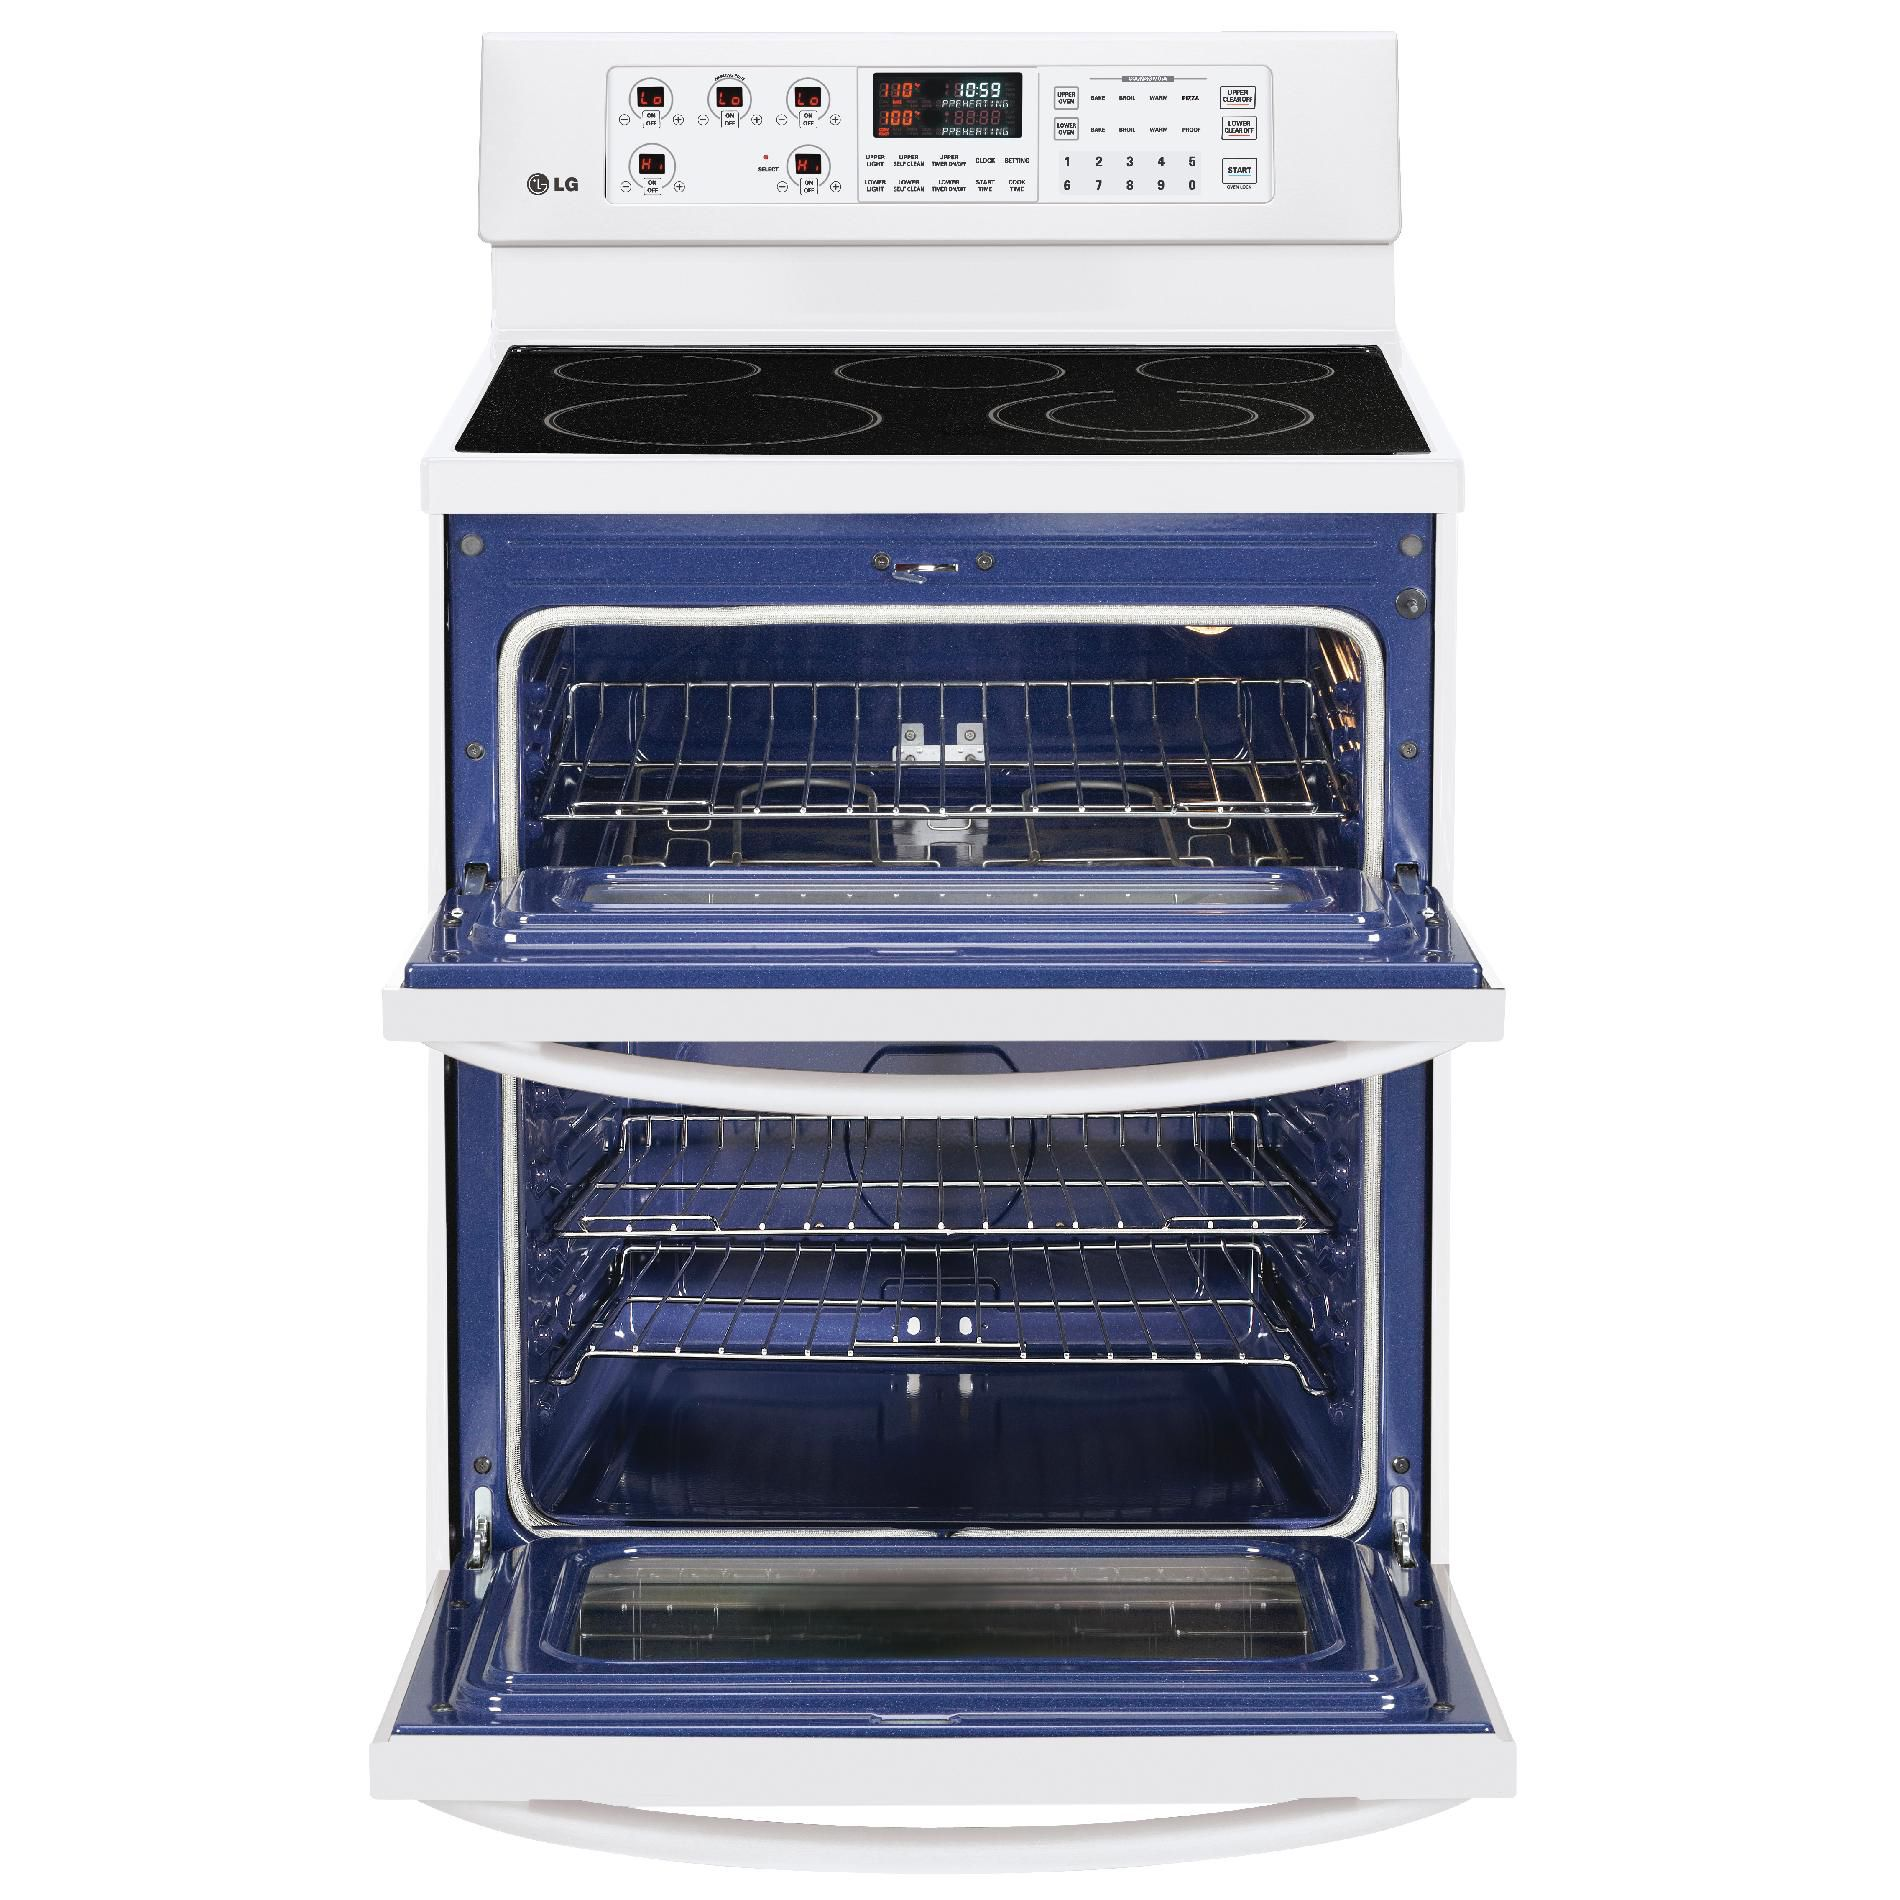 LG 6.6 cu. ft. Double-Oven Electric Range - White